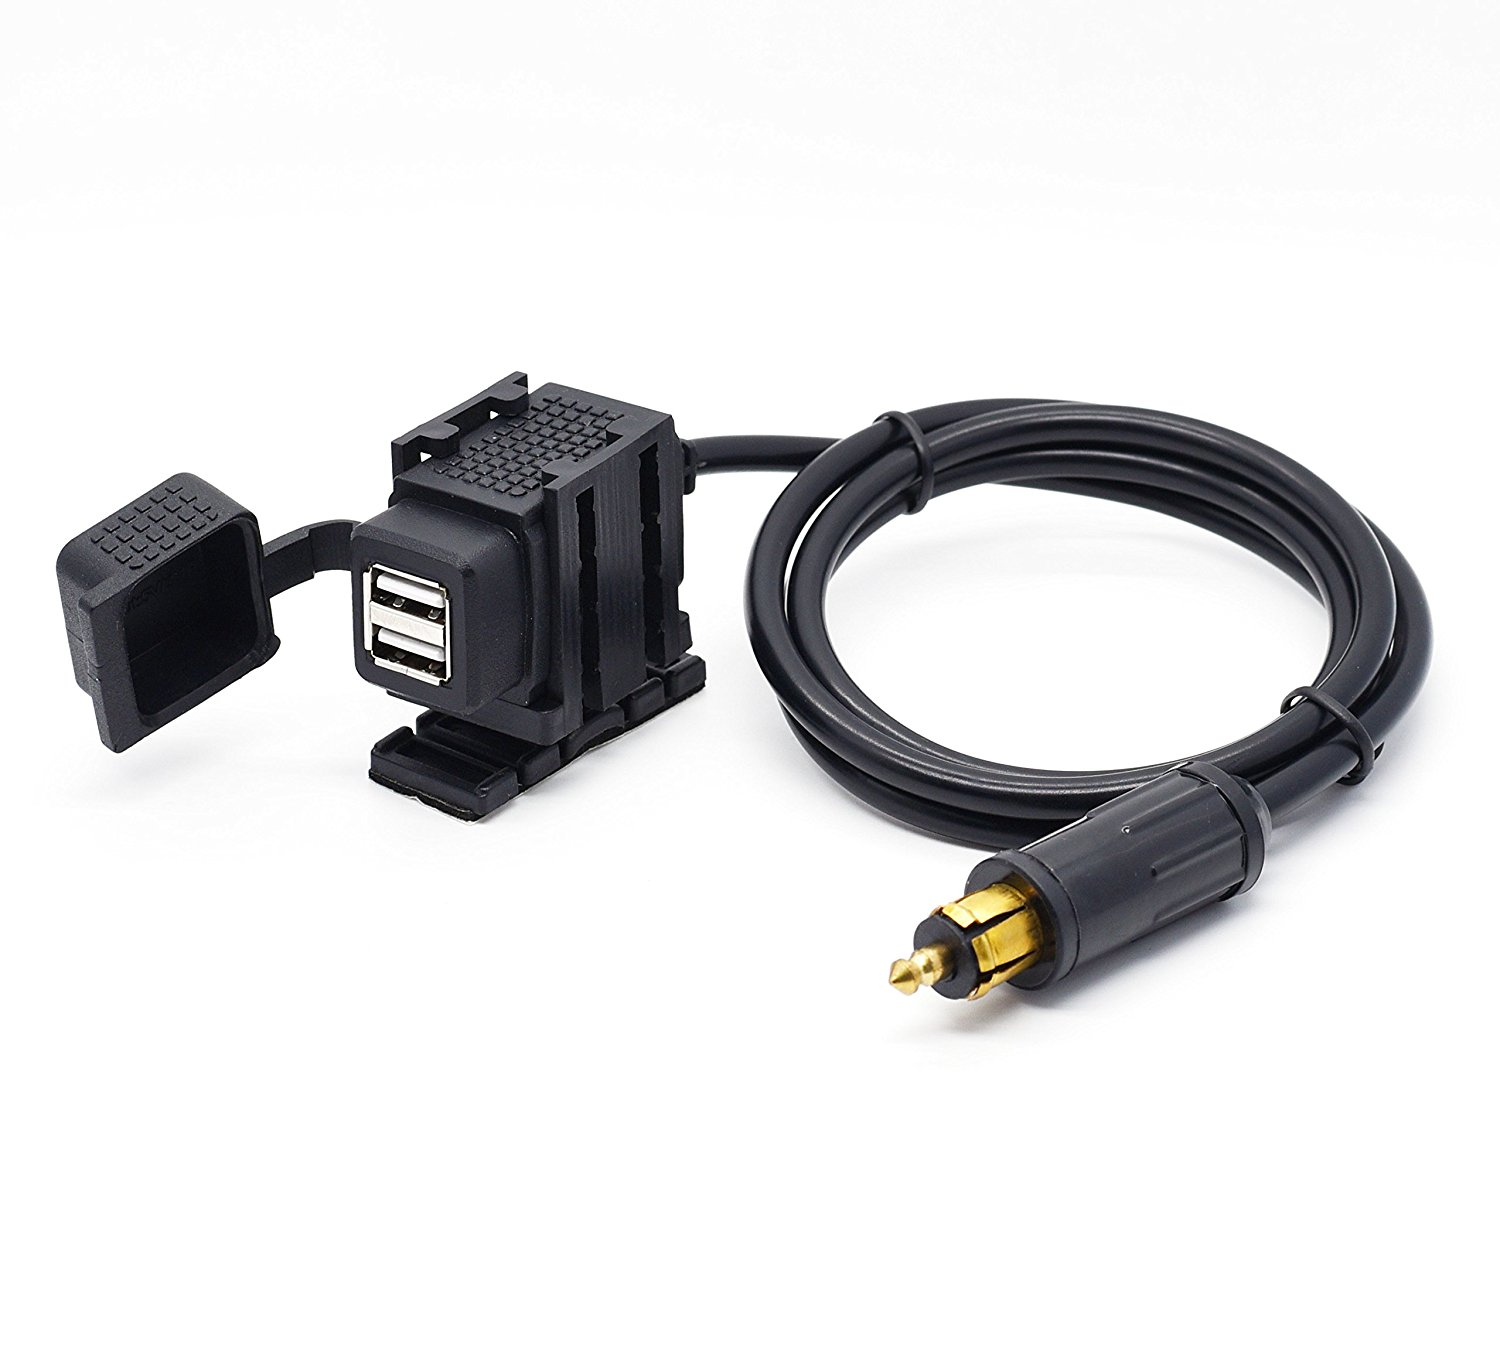 Motorcycle 2.1A Dual USB Charger Socket Power Adapter With 180cm Cable for <font><b>BMW</b></font> <font><b>DIN</b></font> <font><b>Hella</b></font> Plug Phone / iPhone / GPS SatNav image